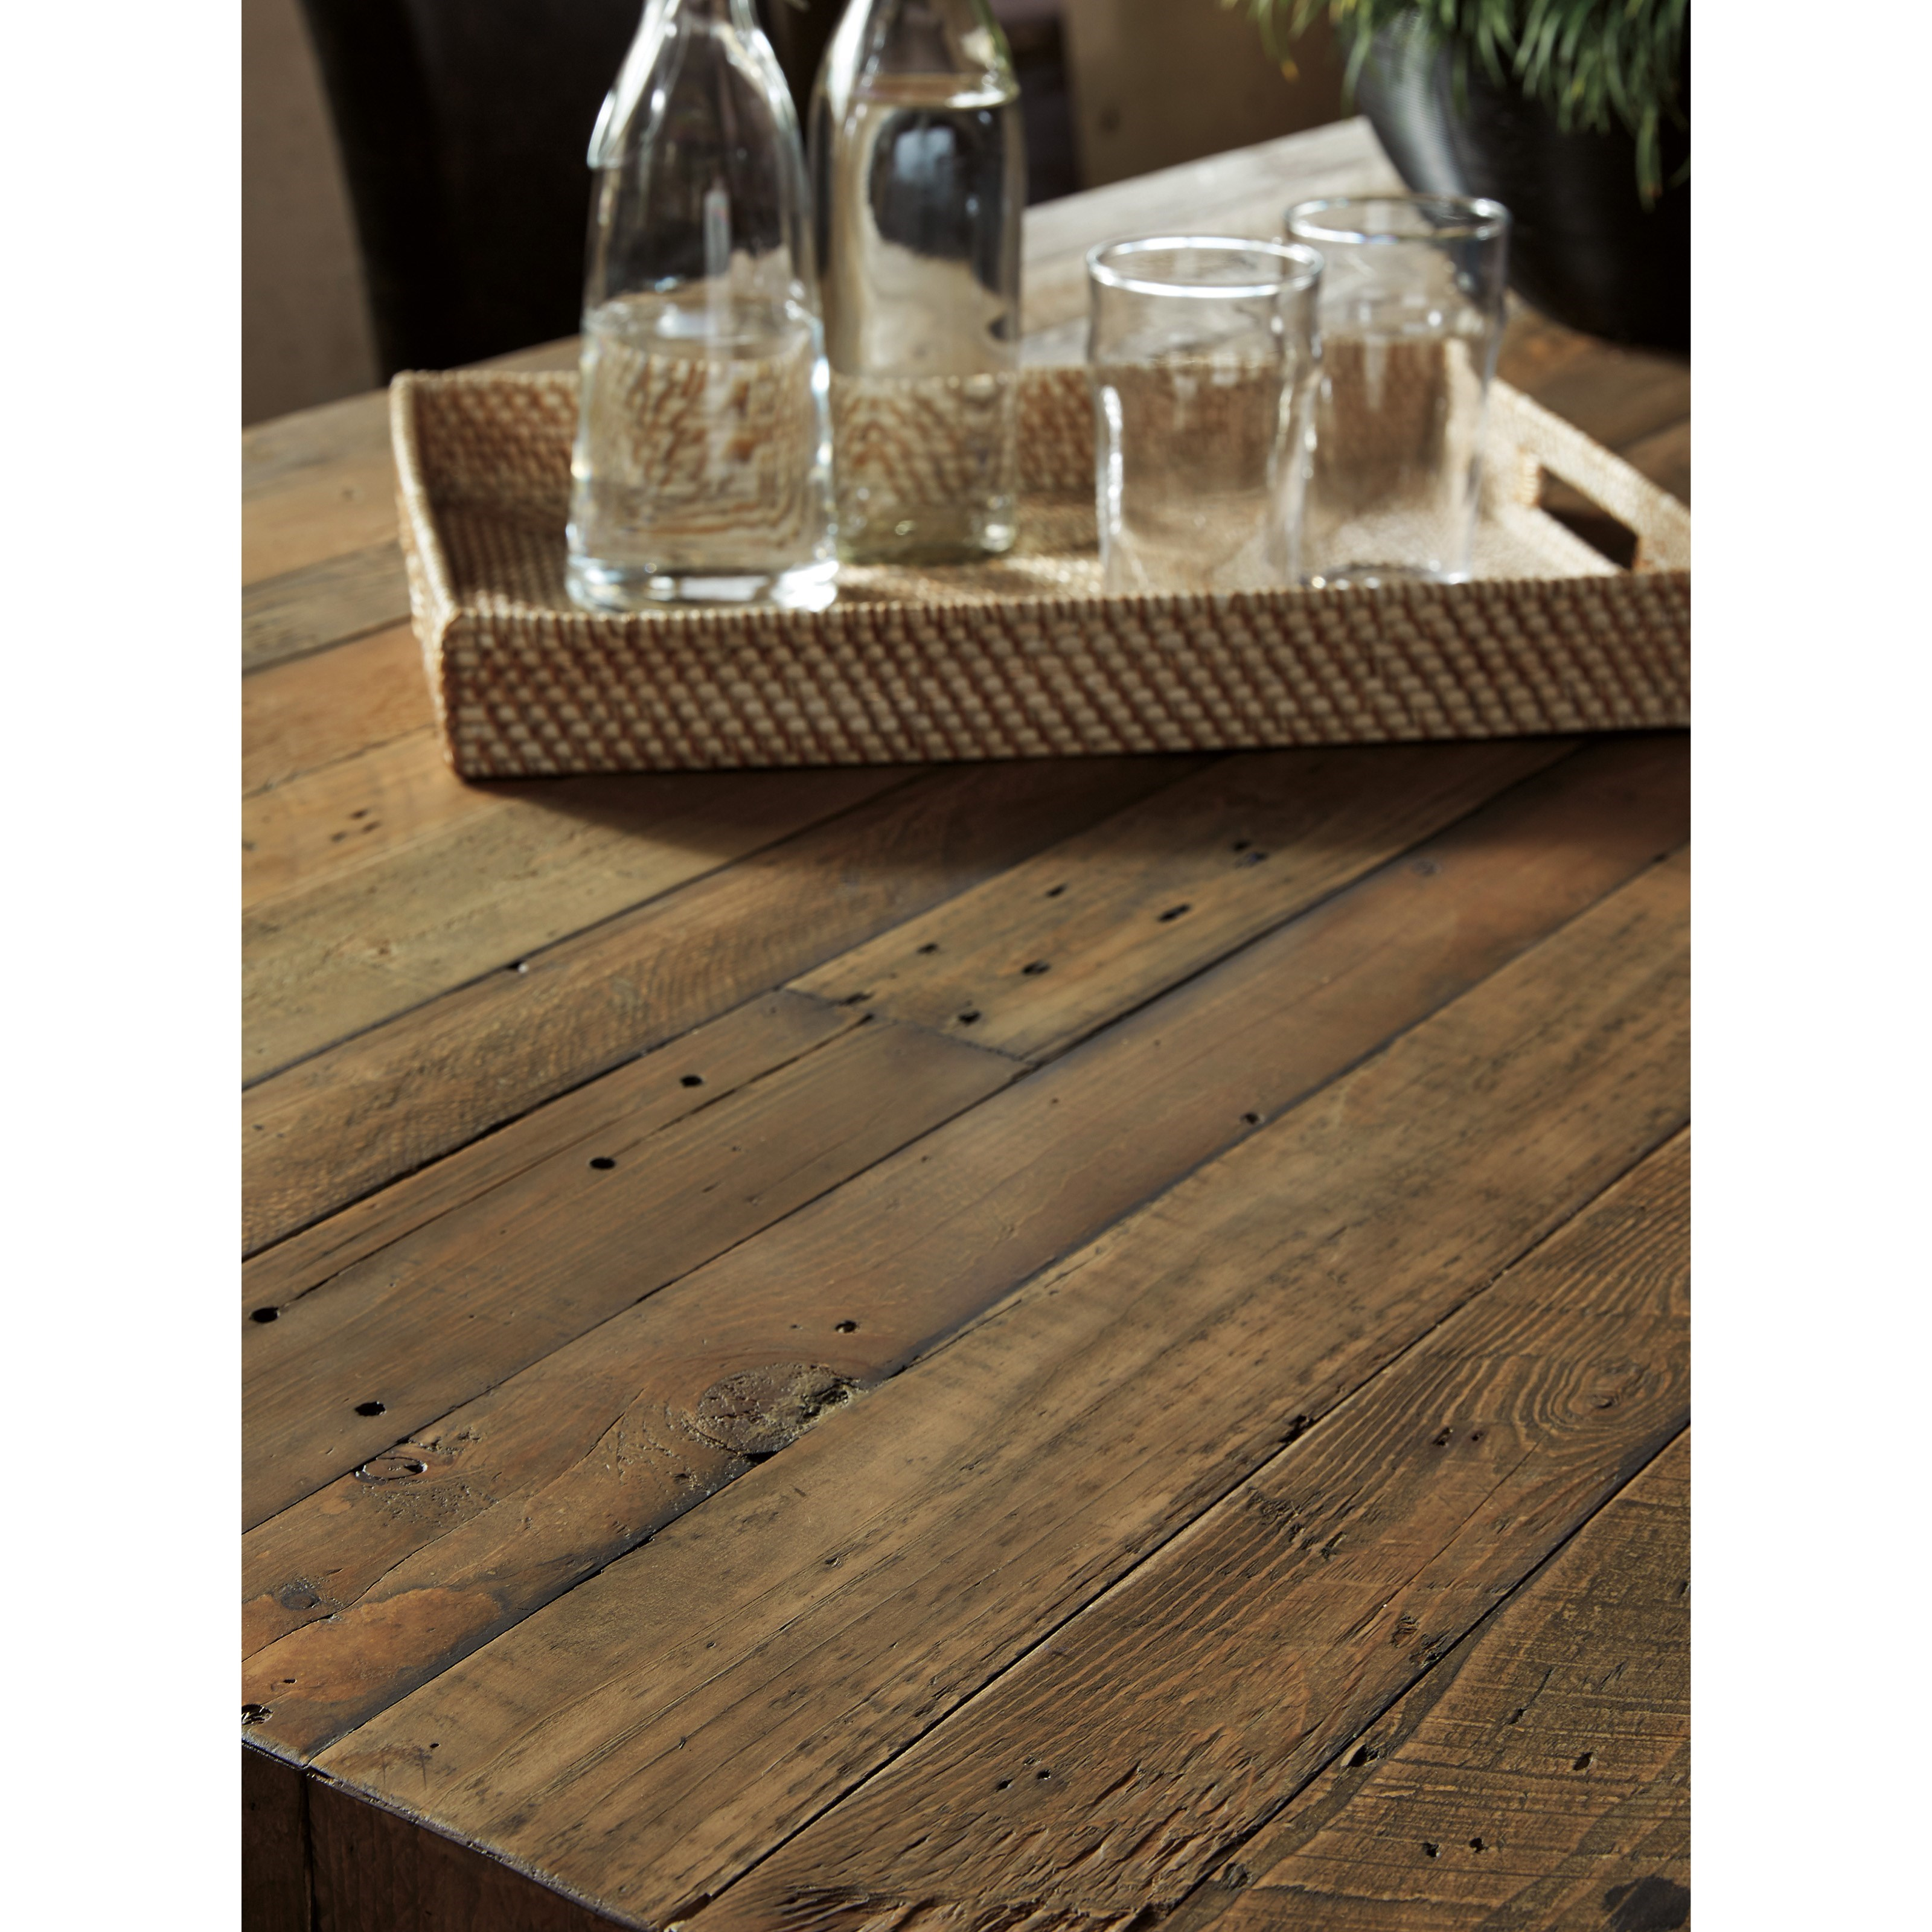 Ashley S Nest Decorating A Dining Room: Signature Design By Ashley Sommerford 7-Piece Rectangular